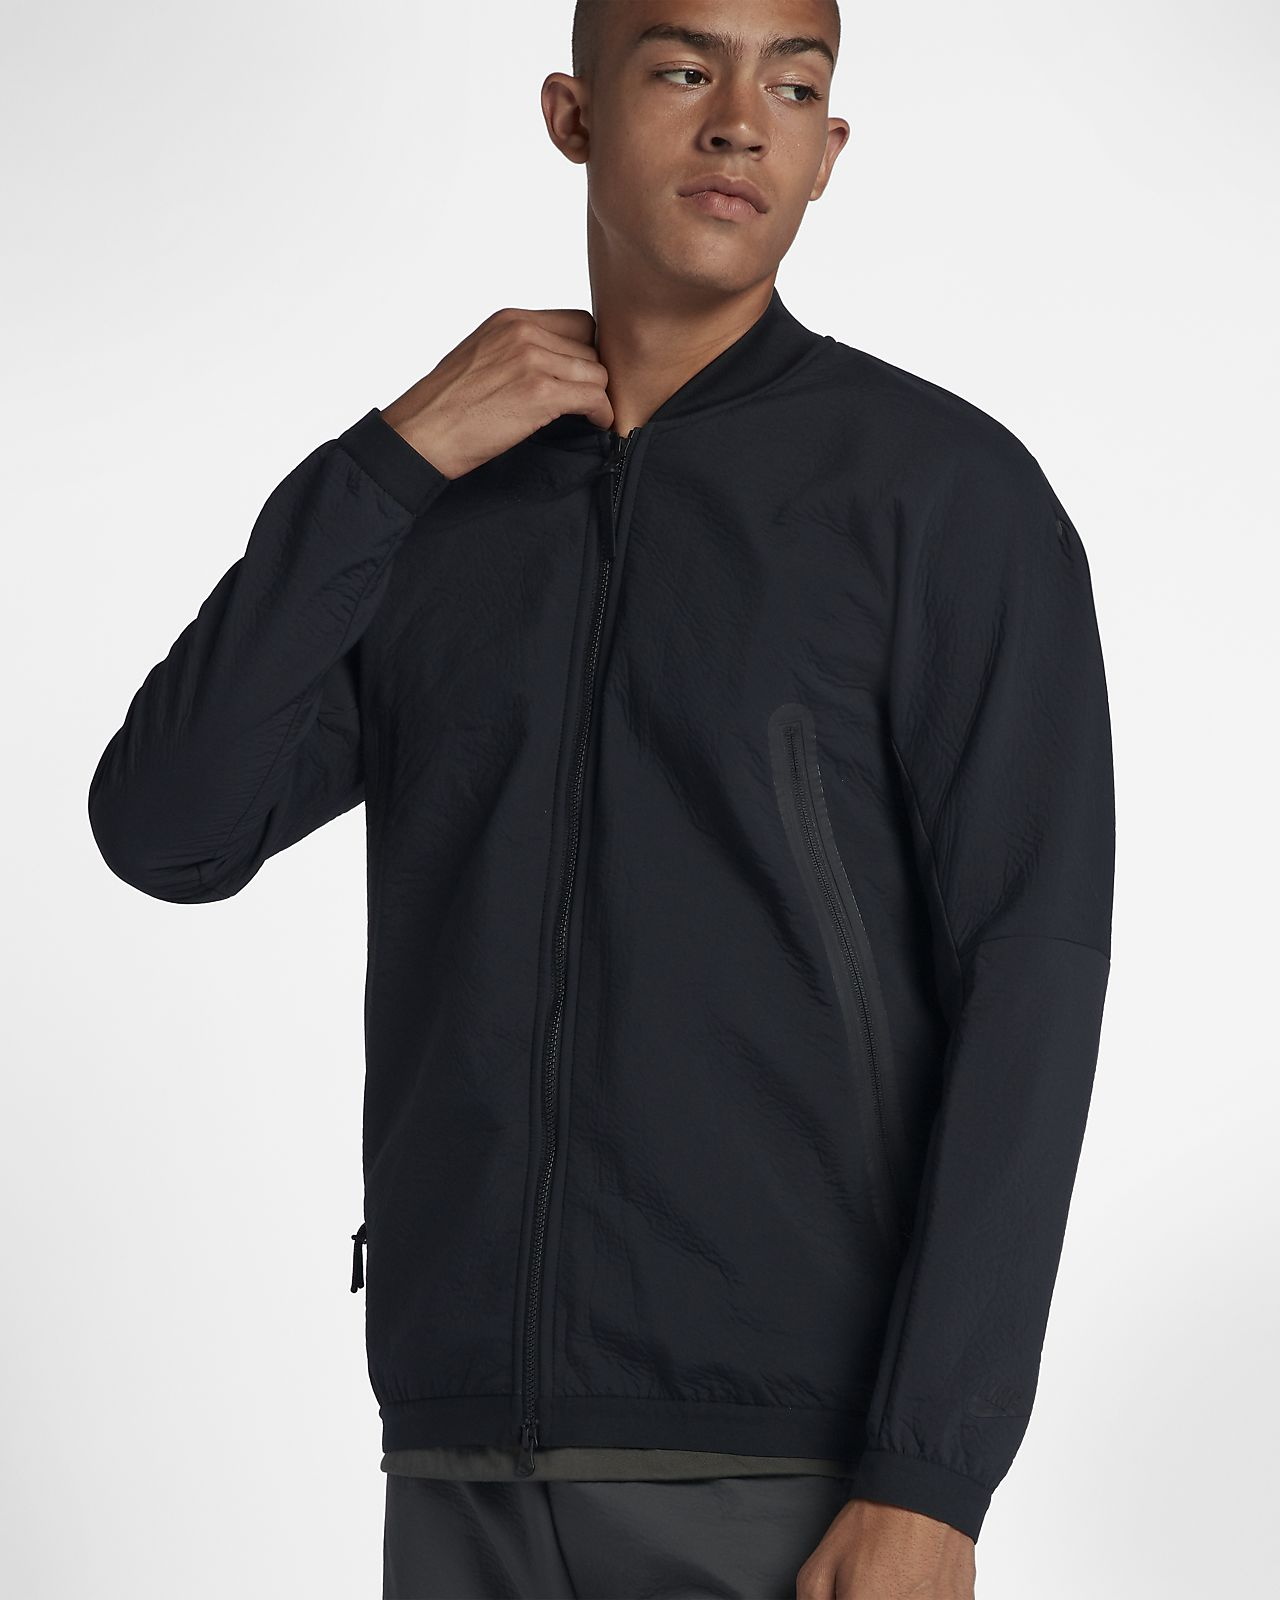 Nike Sportswear Tech Pack Woven Track Jacket